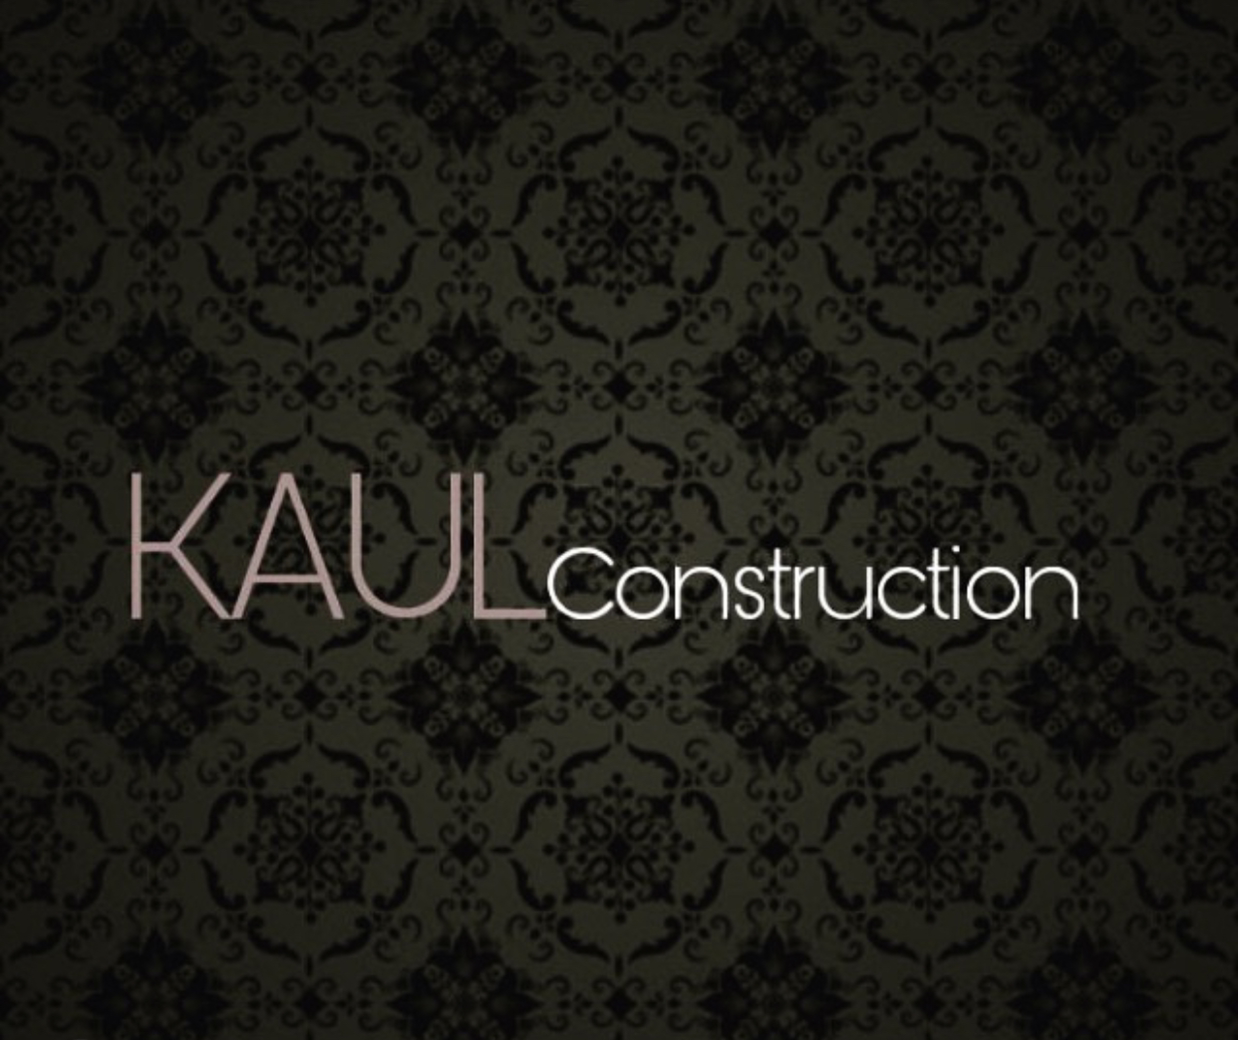 KAULconstruction